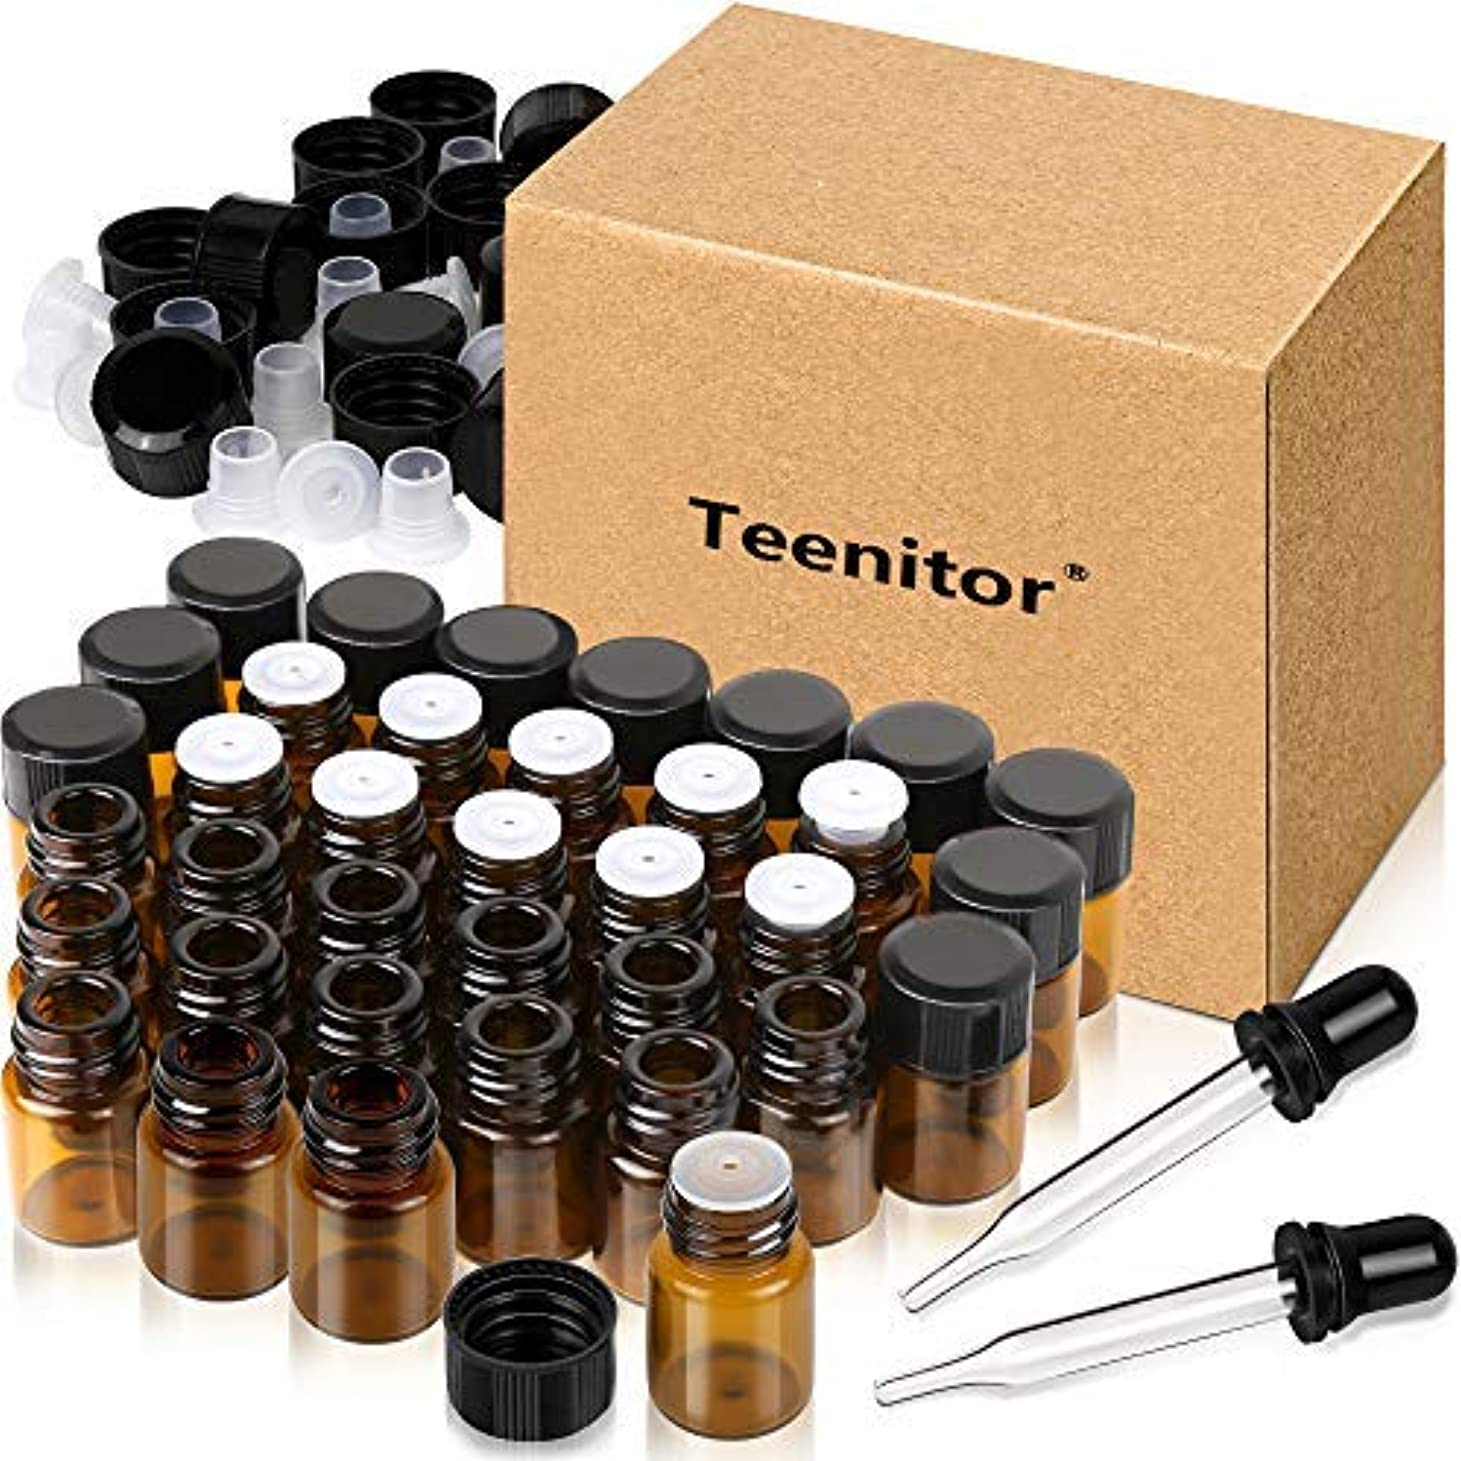 合体遊び場佐賀Oil Bottles for Essential Oils, Teenitor 36 Pcs 2 ml (5/8 Dram) Amber Glass Vials Bottles, with Orifice Reducers...